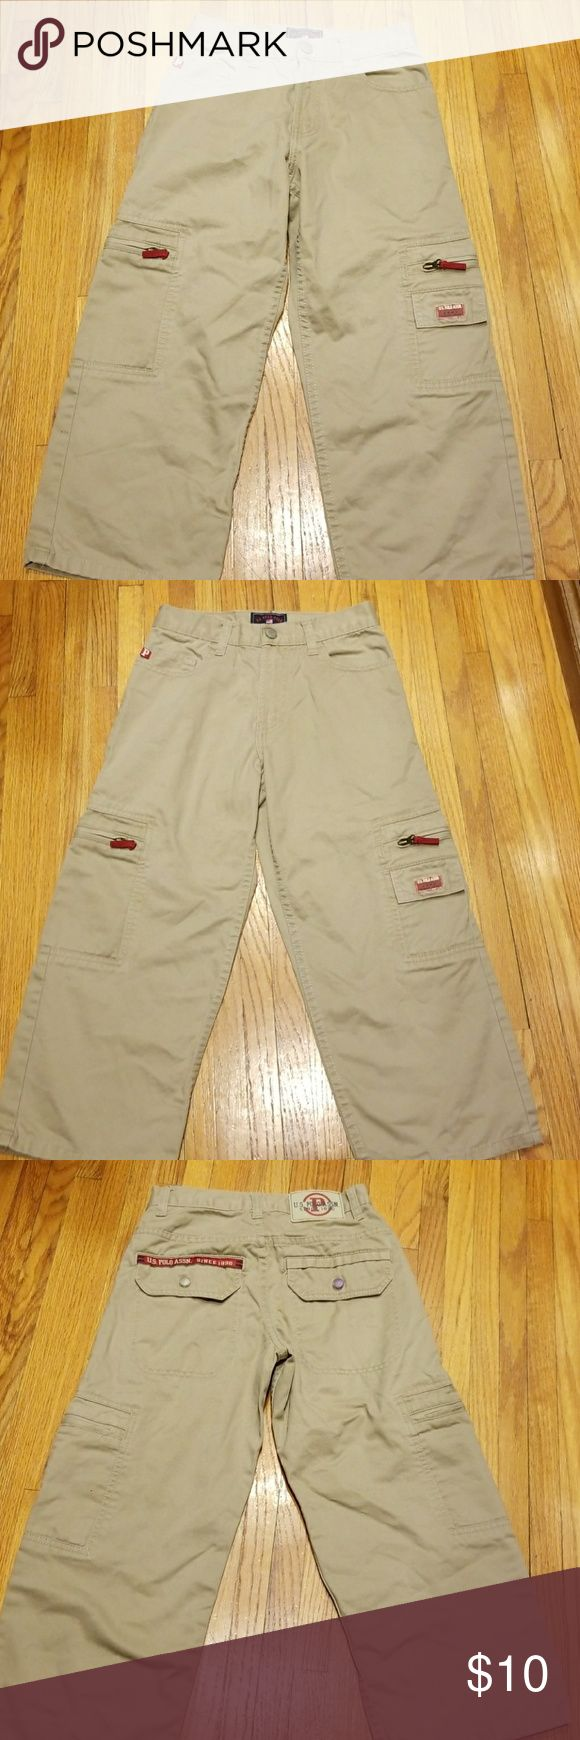 US Polo Assn khaki cargo pants 8 U.S. Pol Assn. khaki cargo pants size 8 like new condition!  Back pocket has a snap closure one is clear and one appear slightly bluish, see picture. U.S. Polo Assn. Bottoms Casual